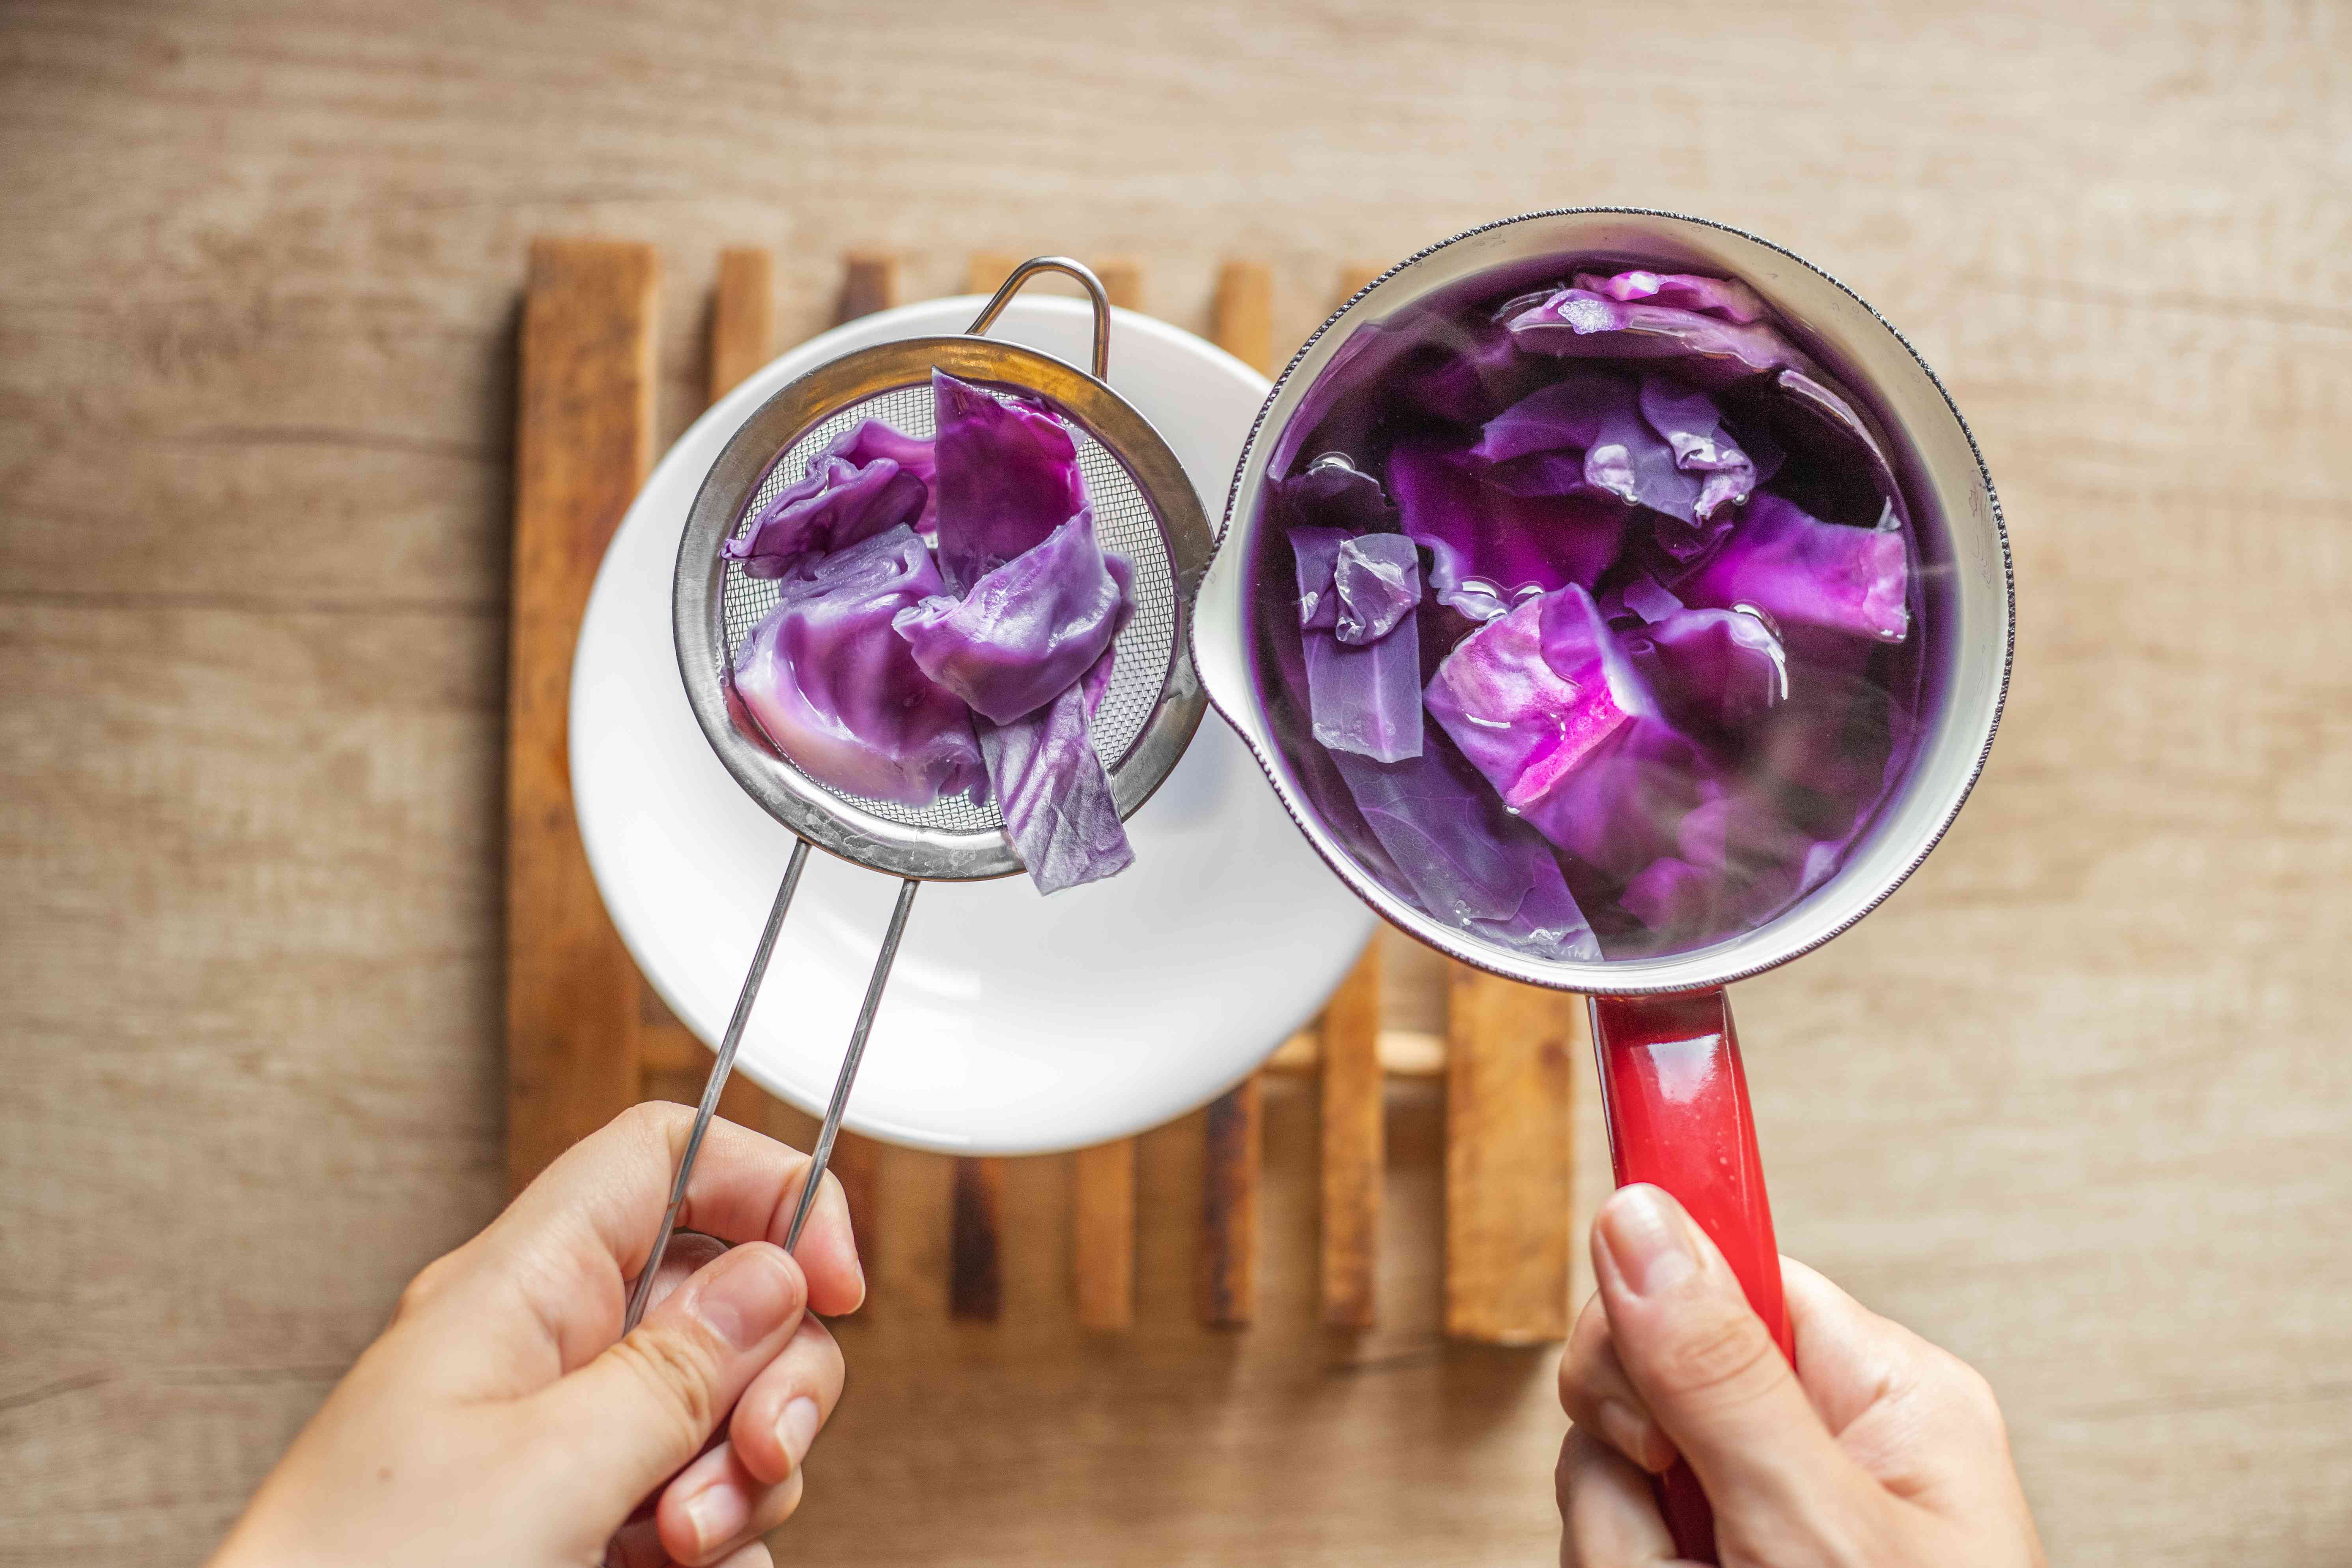 a sieve is used to strain red cabbage out of boiled purple water into bowl